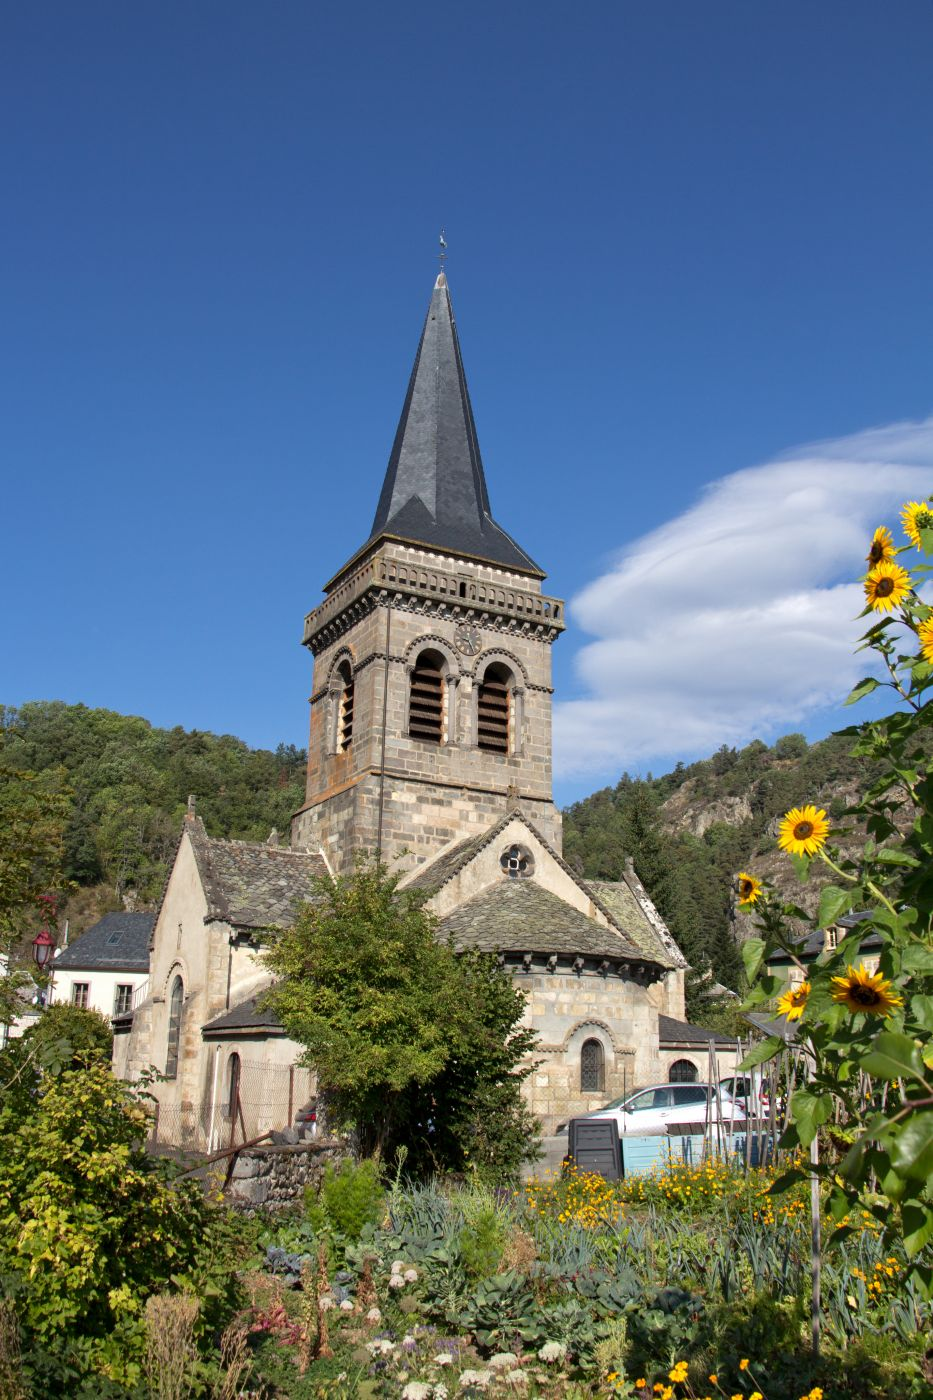 Chambon-sur-Lac (church), France